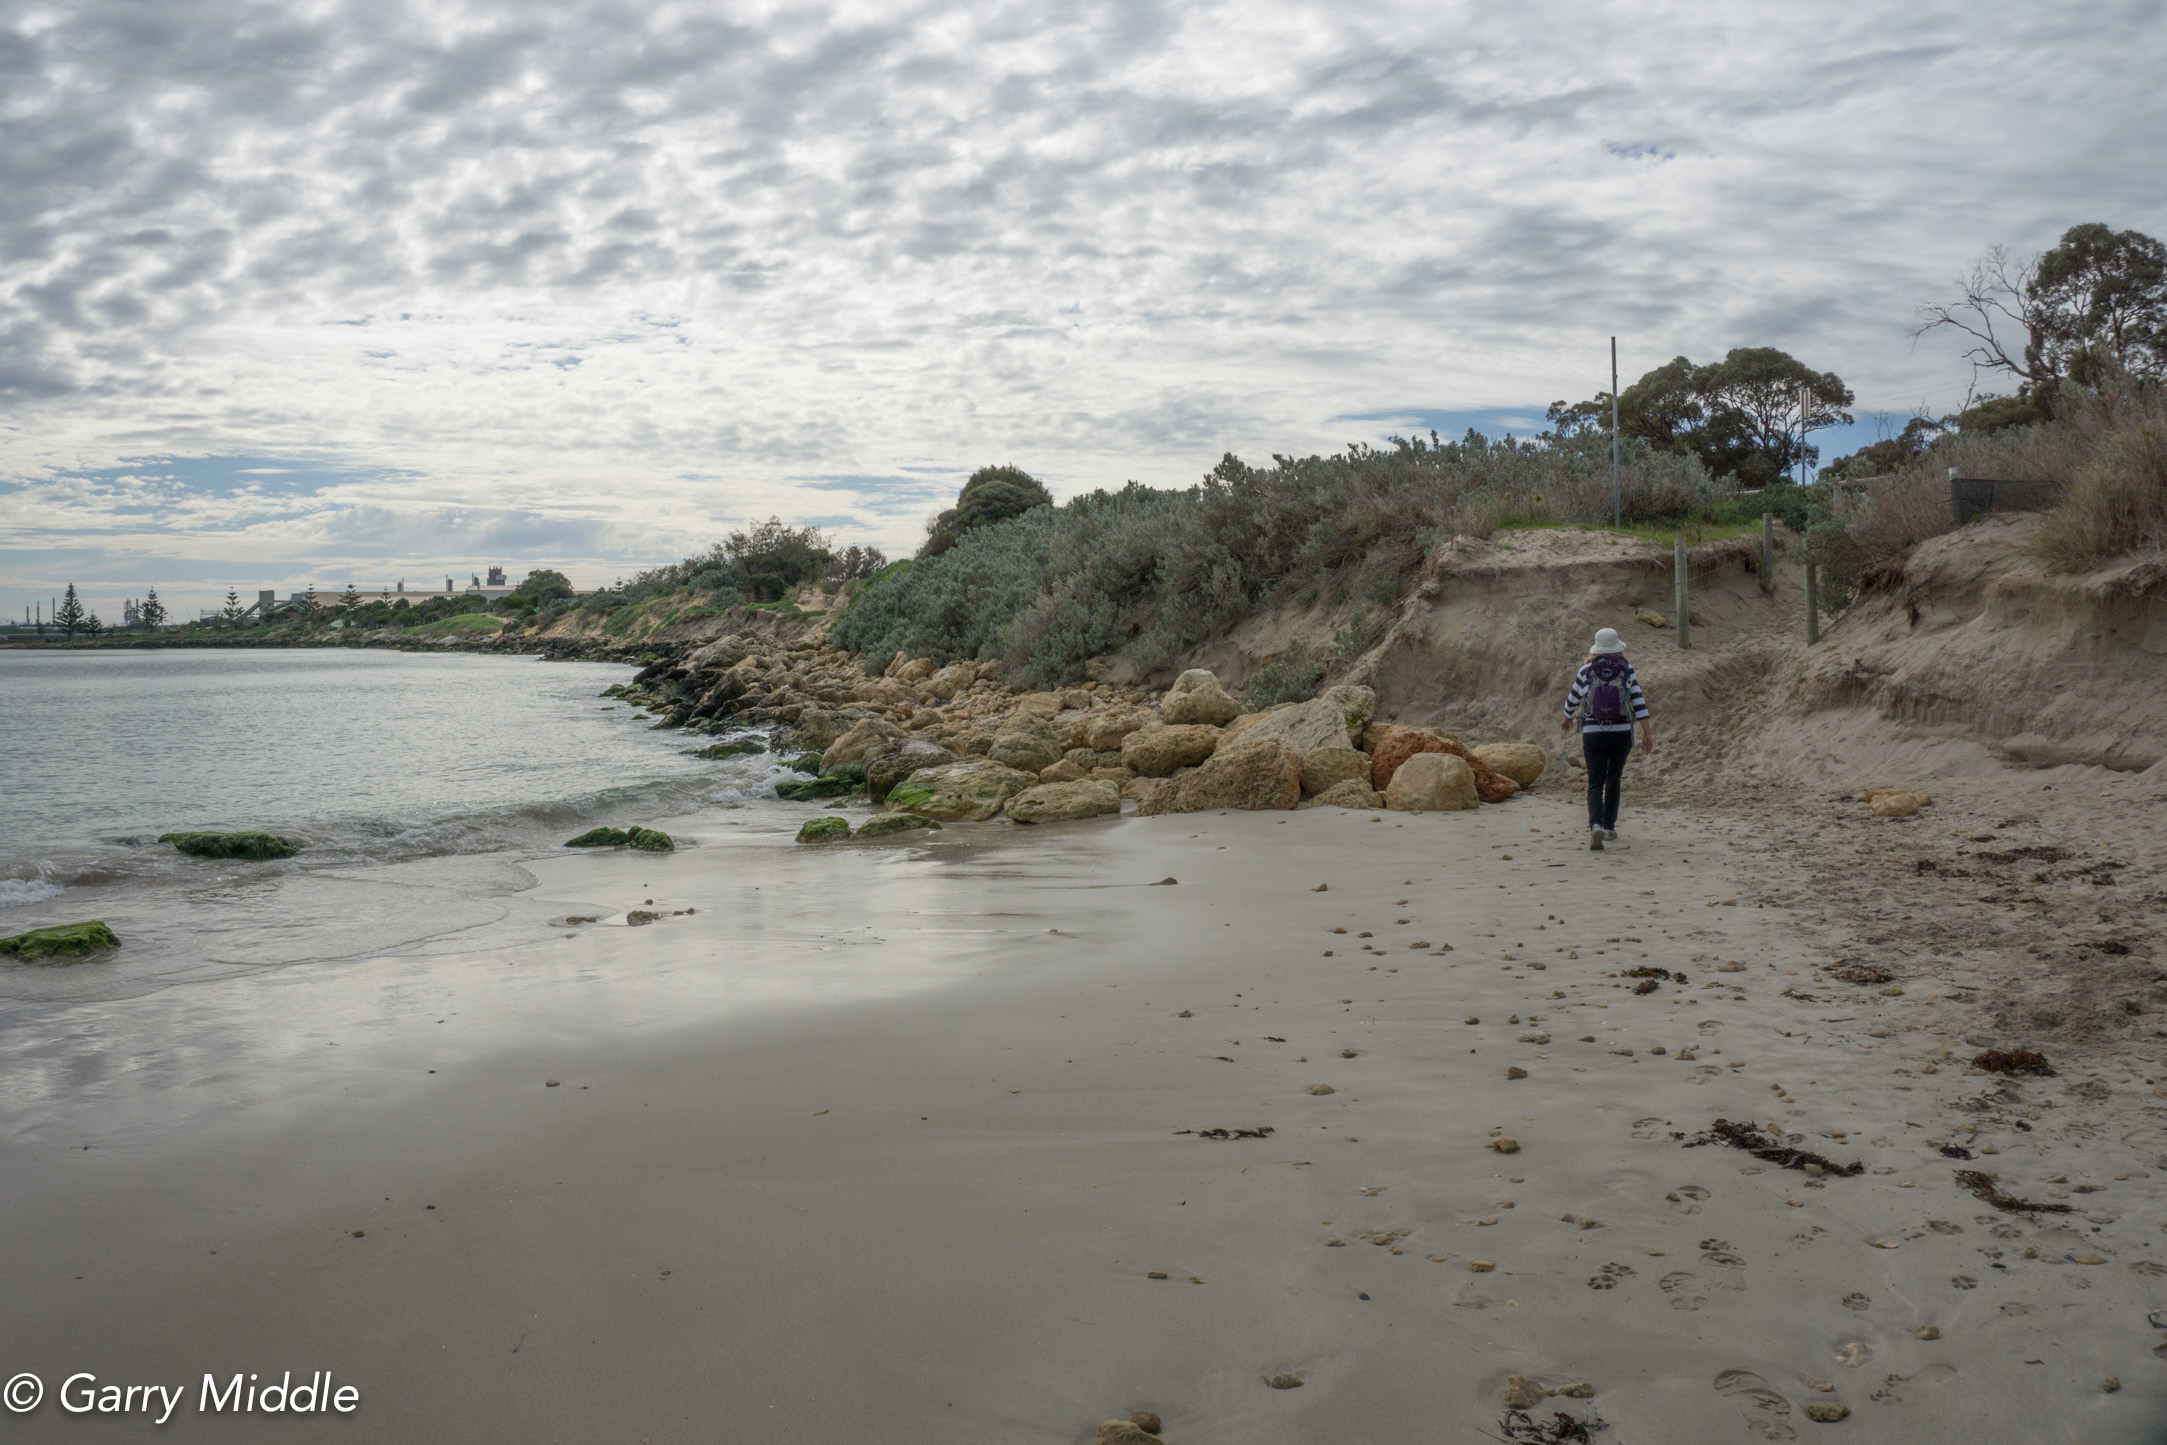 Plate 19: End of the beach just south of Kwinana Beach. The seawall and lack of beach is obvious. The track to the small carpark is visible at the end of the beach